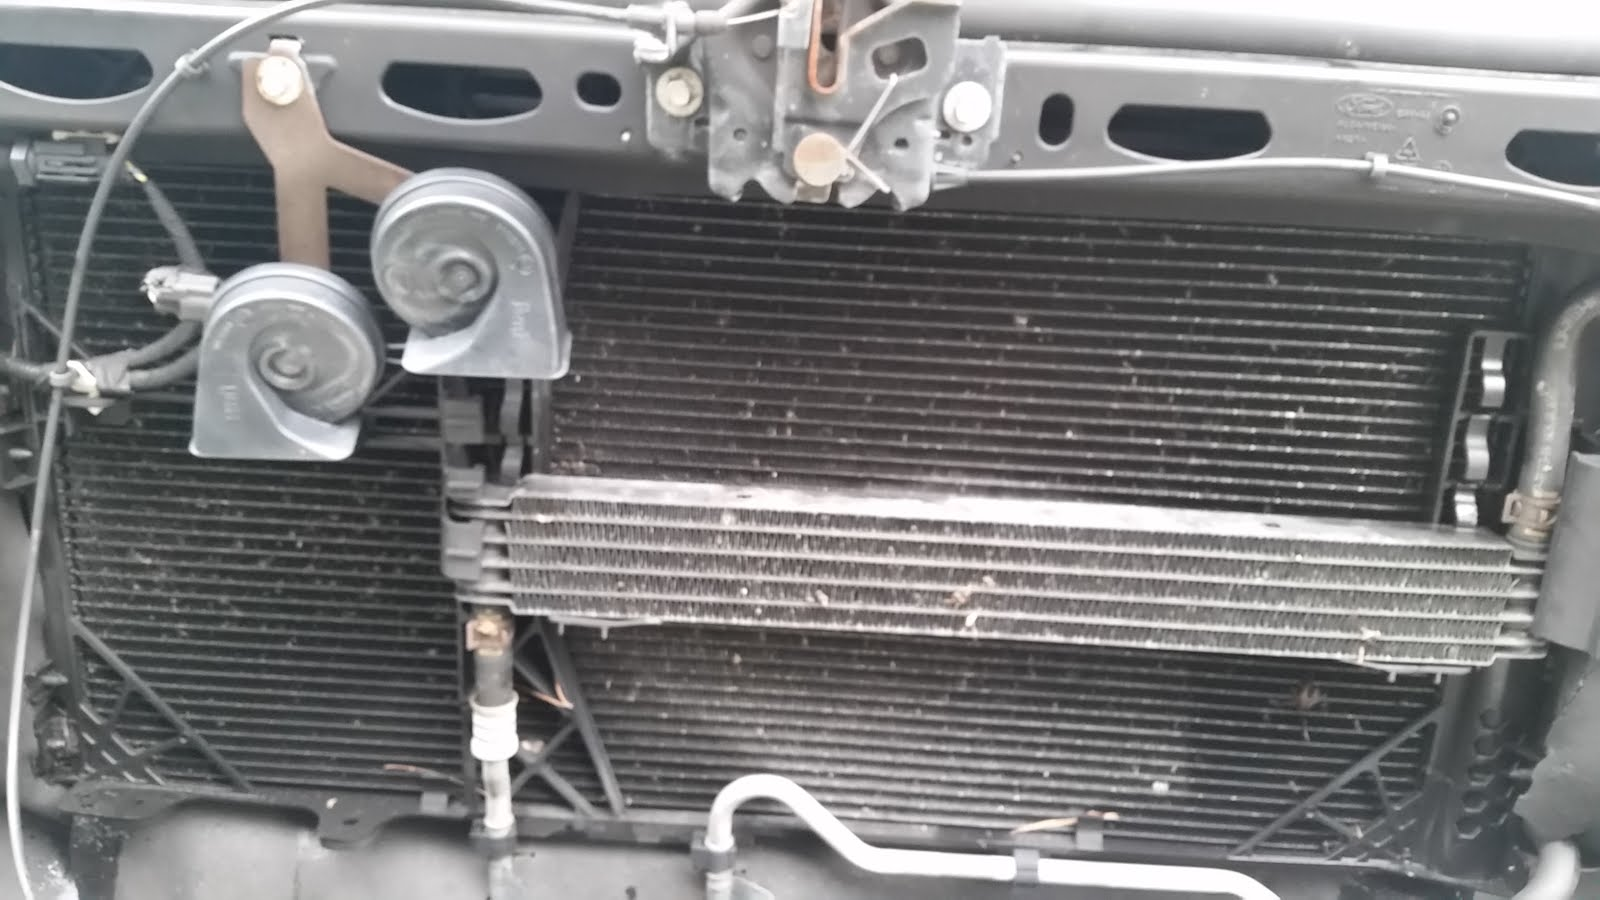 Power Steering Leak Diagnosis And Repair  Ford F  Lariat Rh Radiatorhelpline Com Ford F   Transmission Cooler Lines  Ford F  Oil Cooler